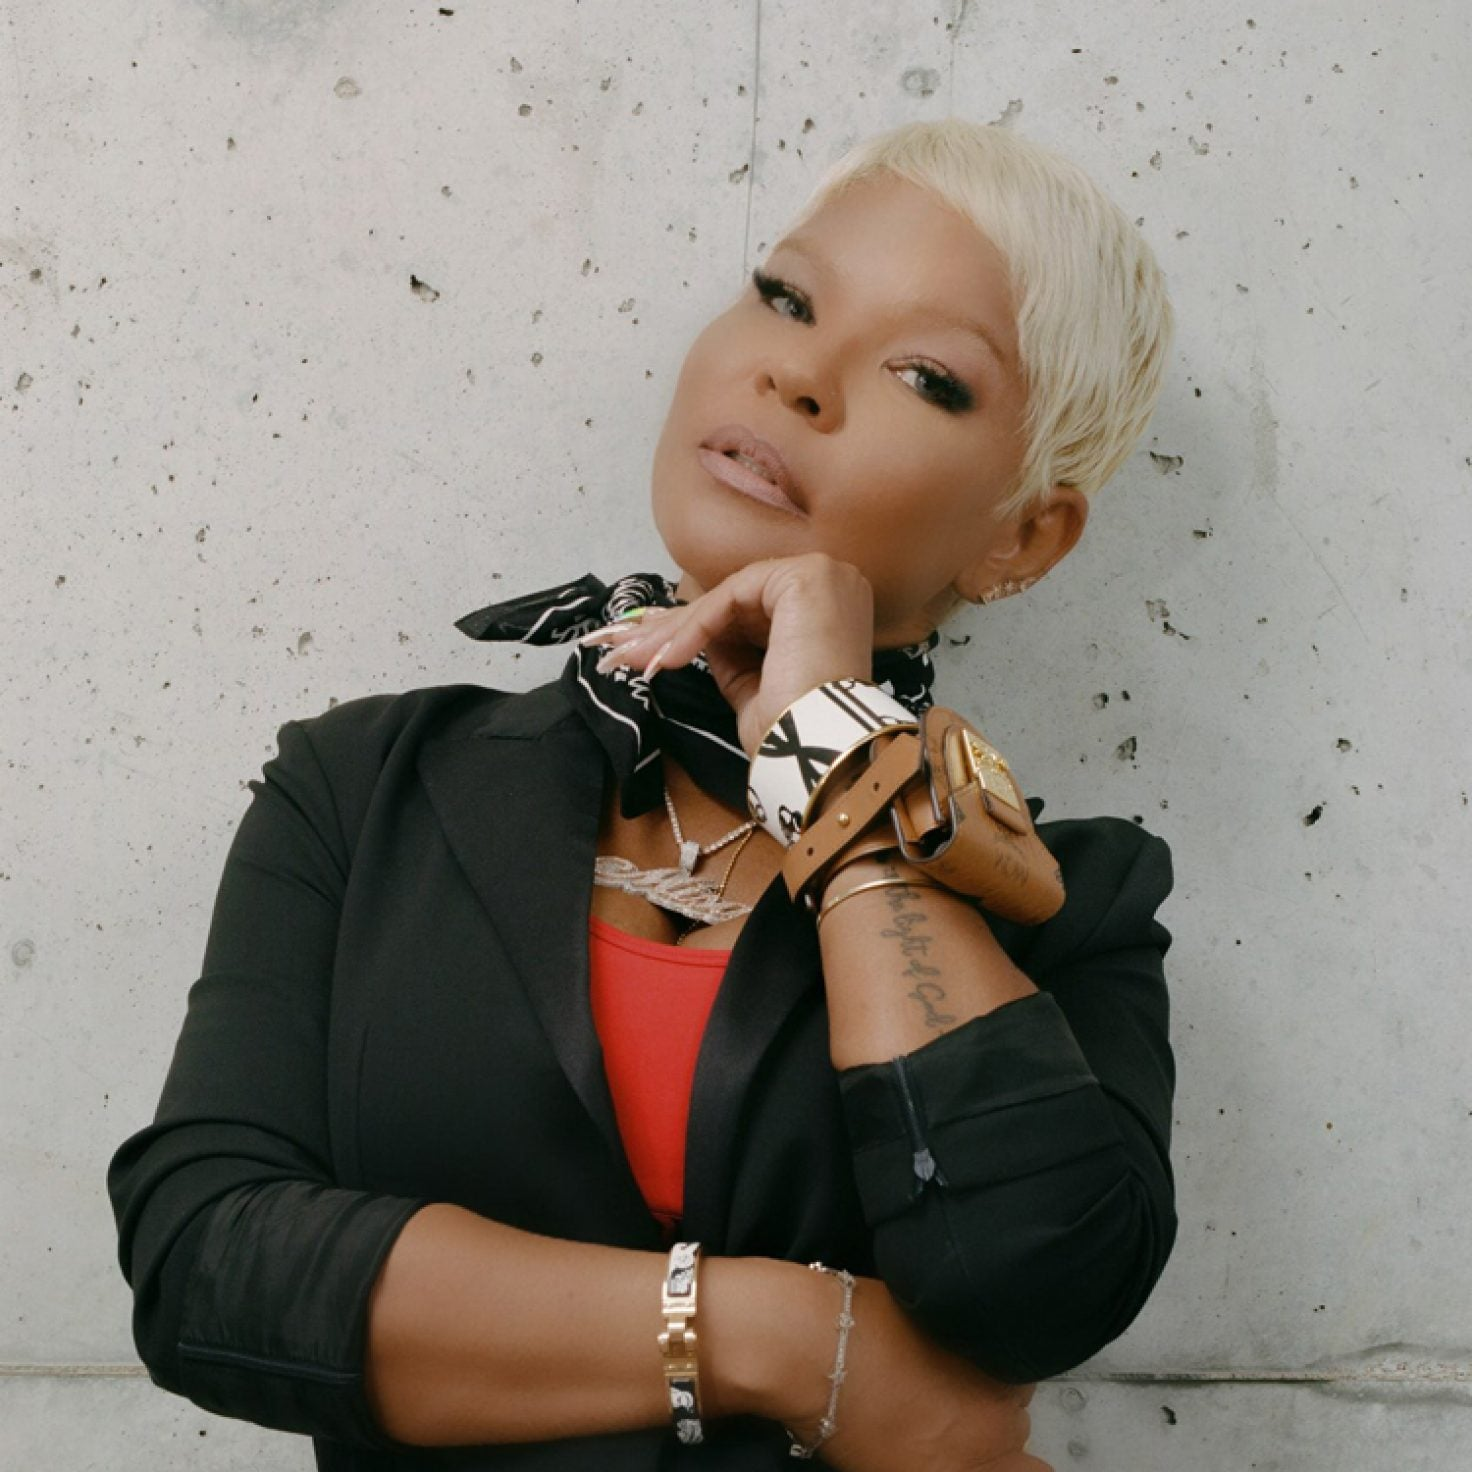 Misa Hylton Says 'It Feels Good' Seeing The Love She Received After 'Wap' Video